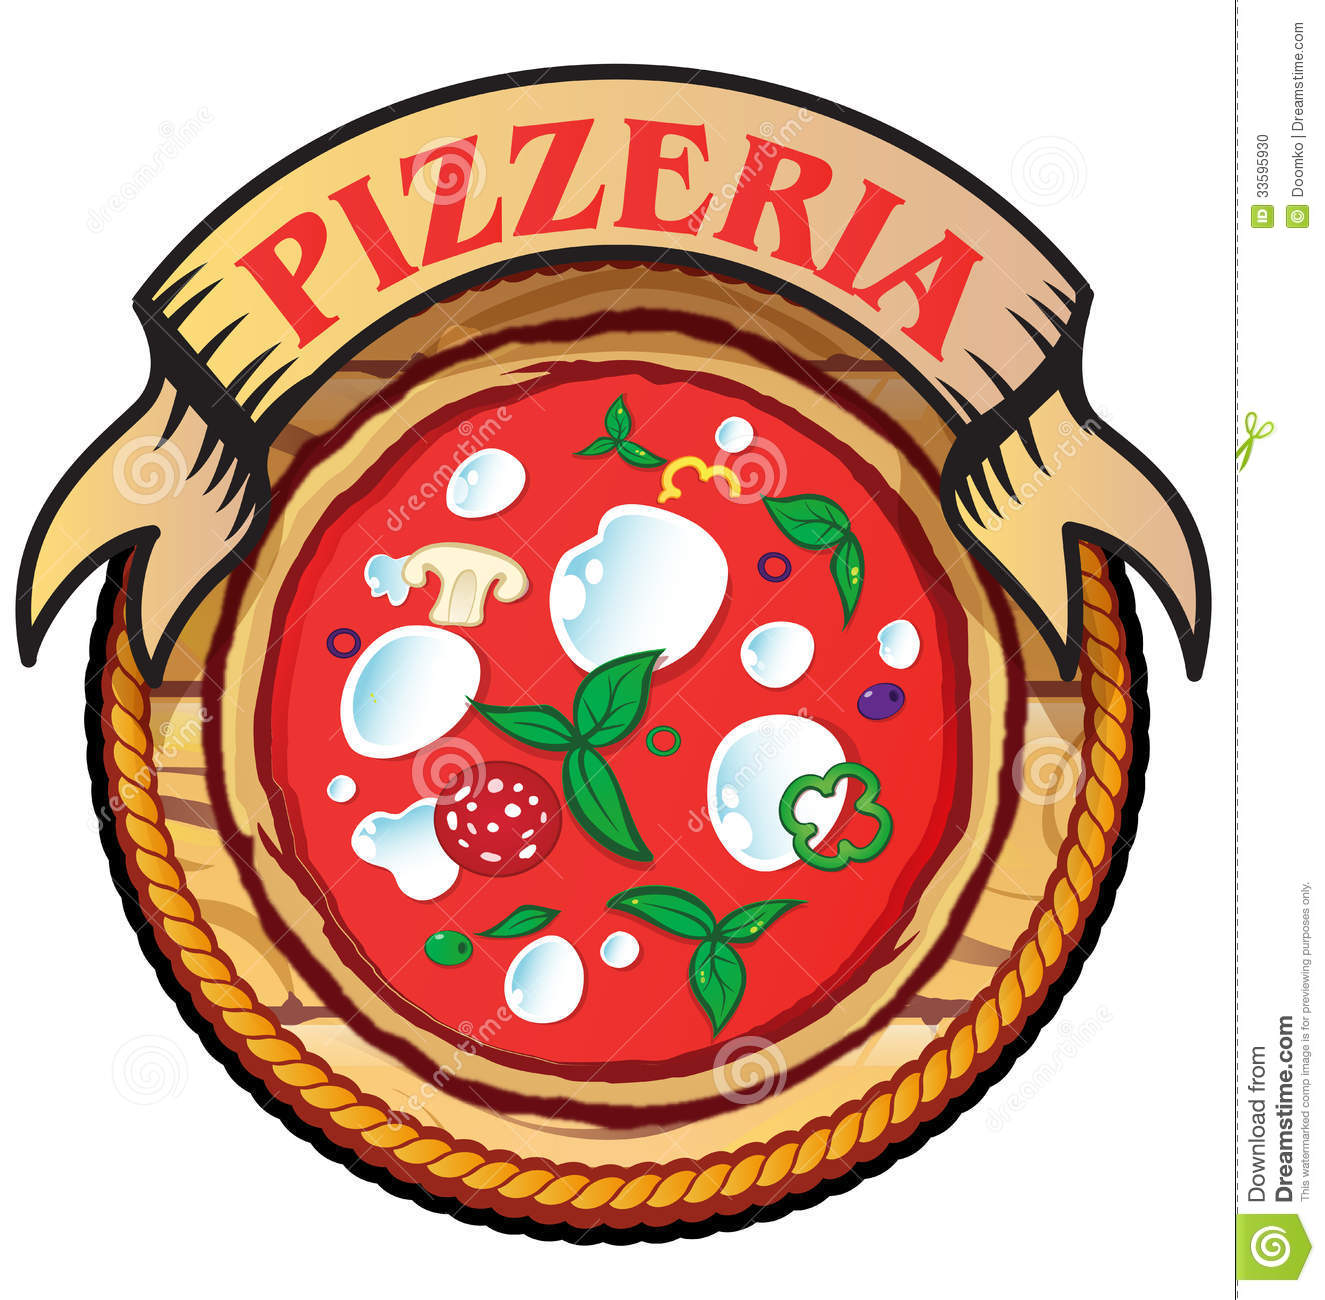 pizza pizzeria Pizzeria definition, a restaurant, bakery, or the like, where pizzas are made and sold see more.